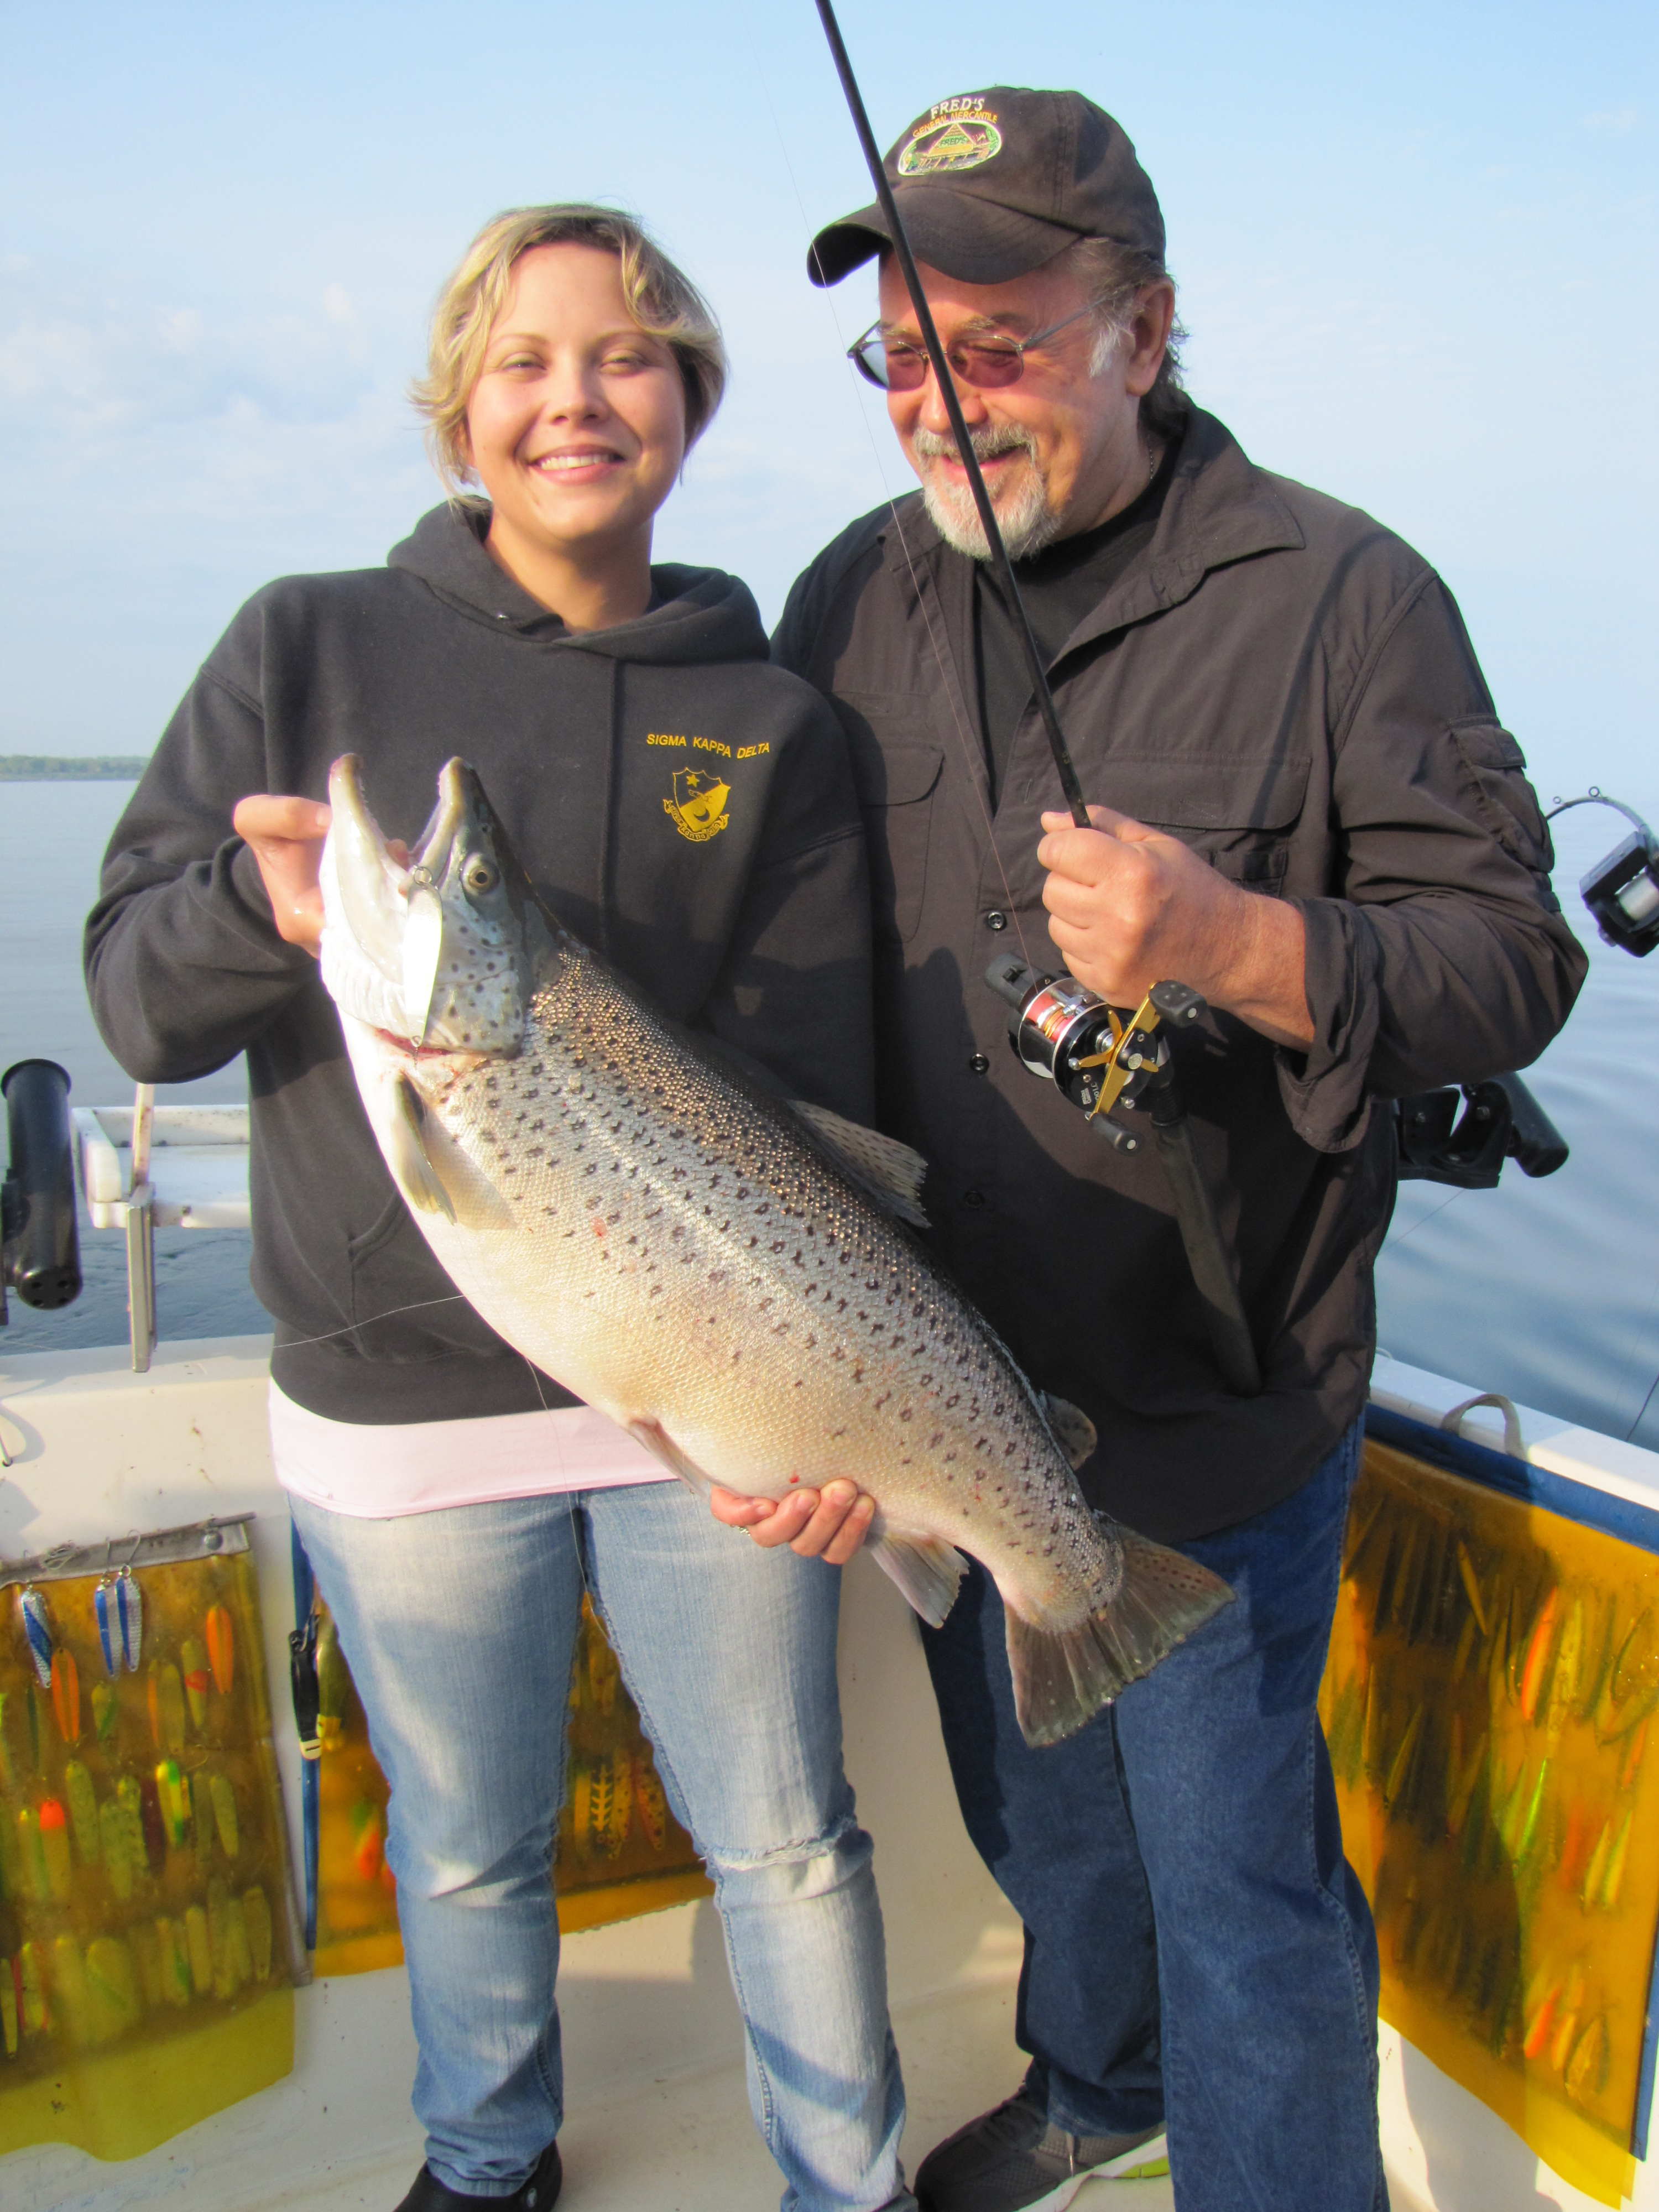 Lake ontario salmon fishing tips fish doctor charters for Salmon fishing setup